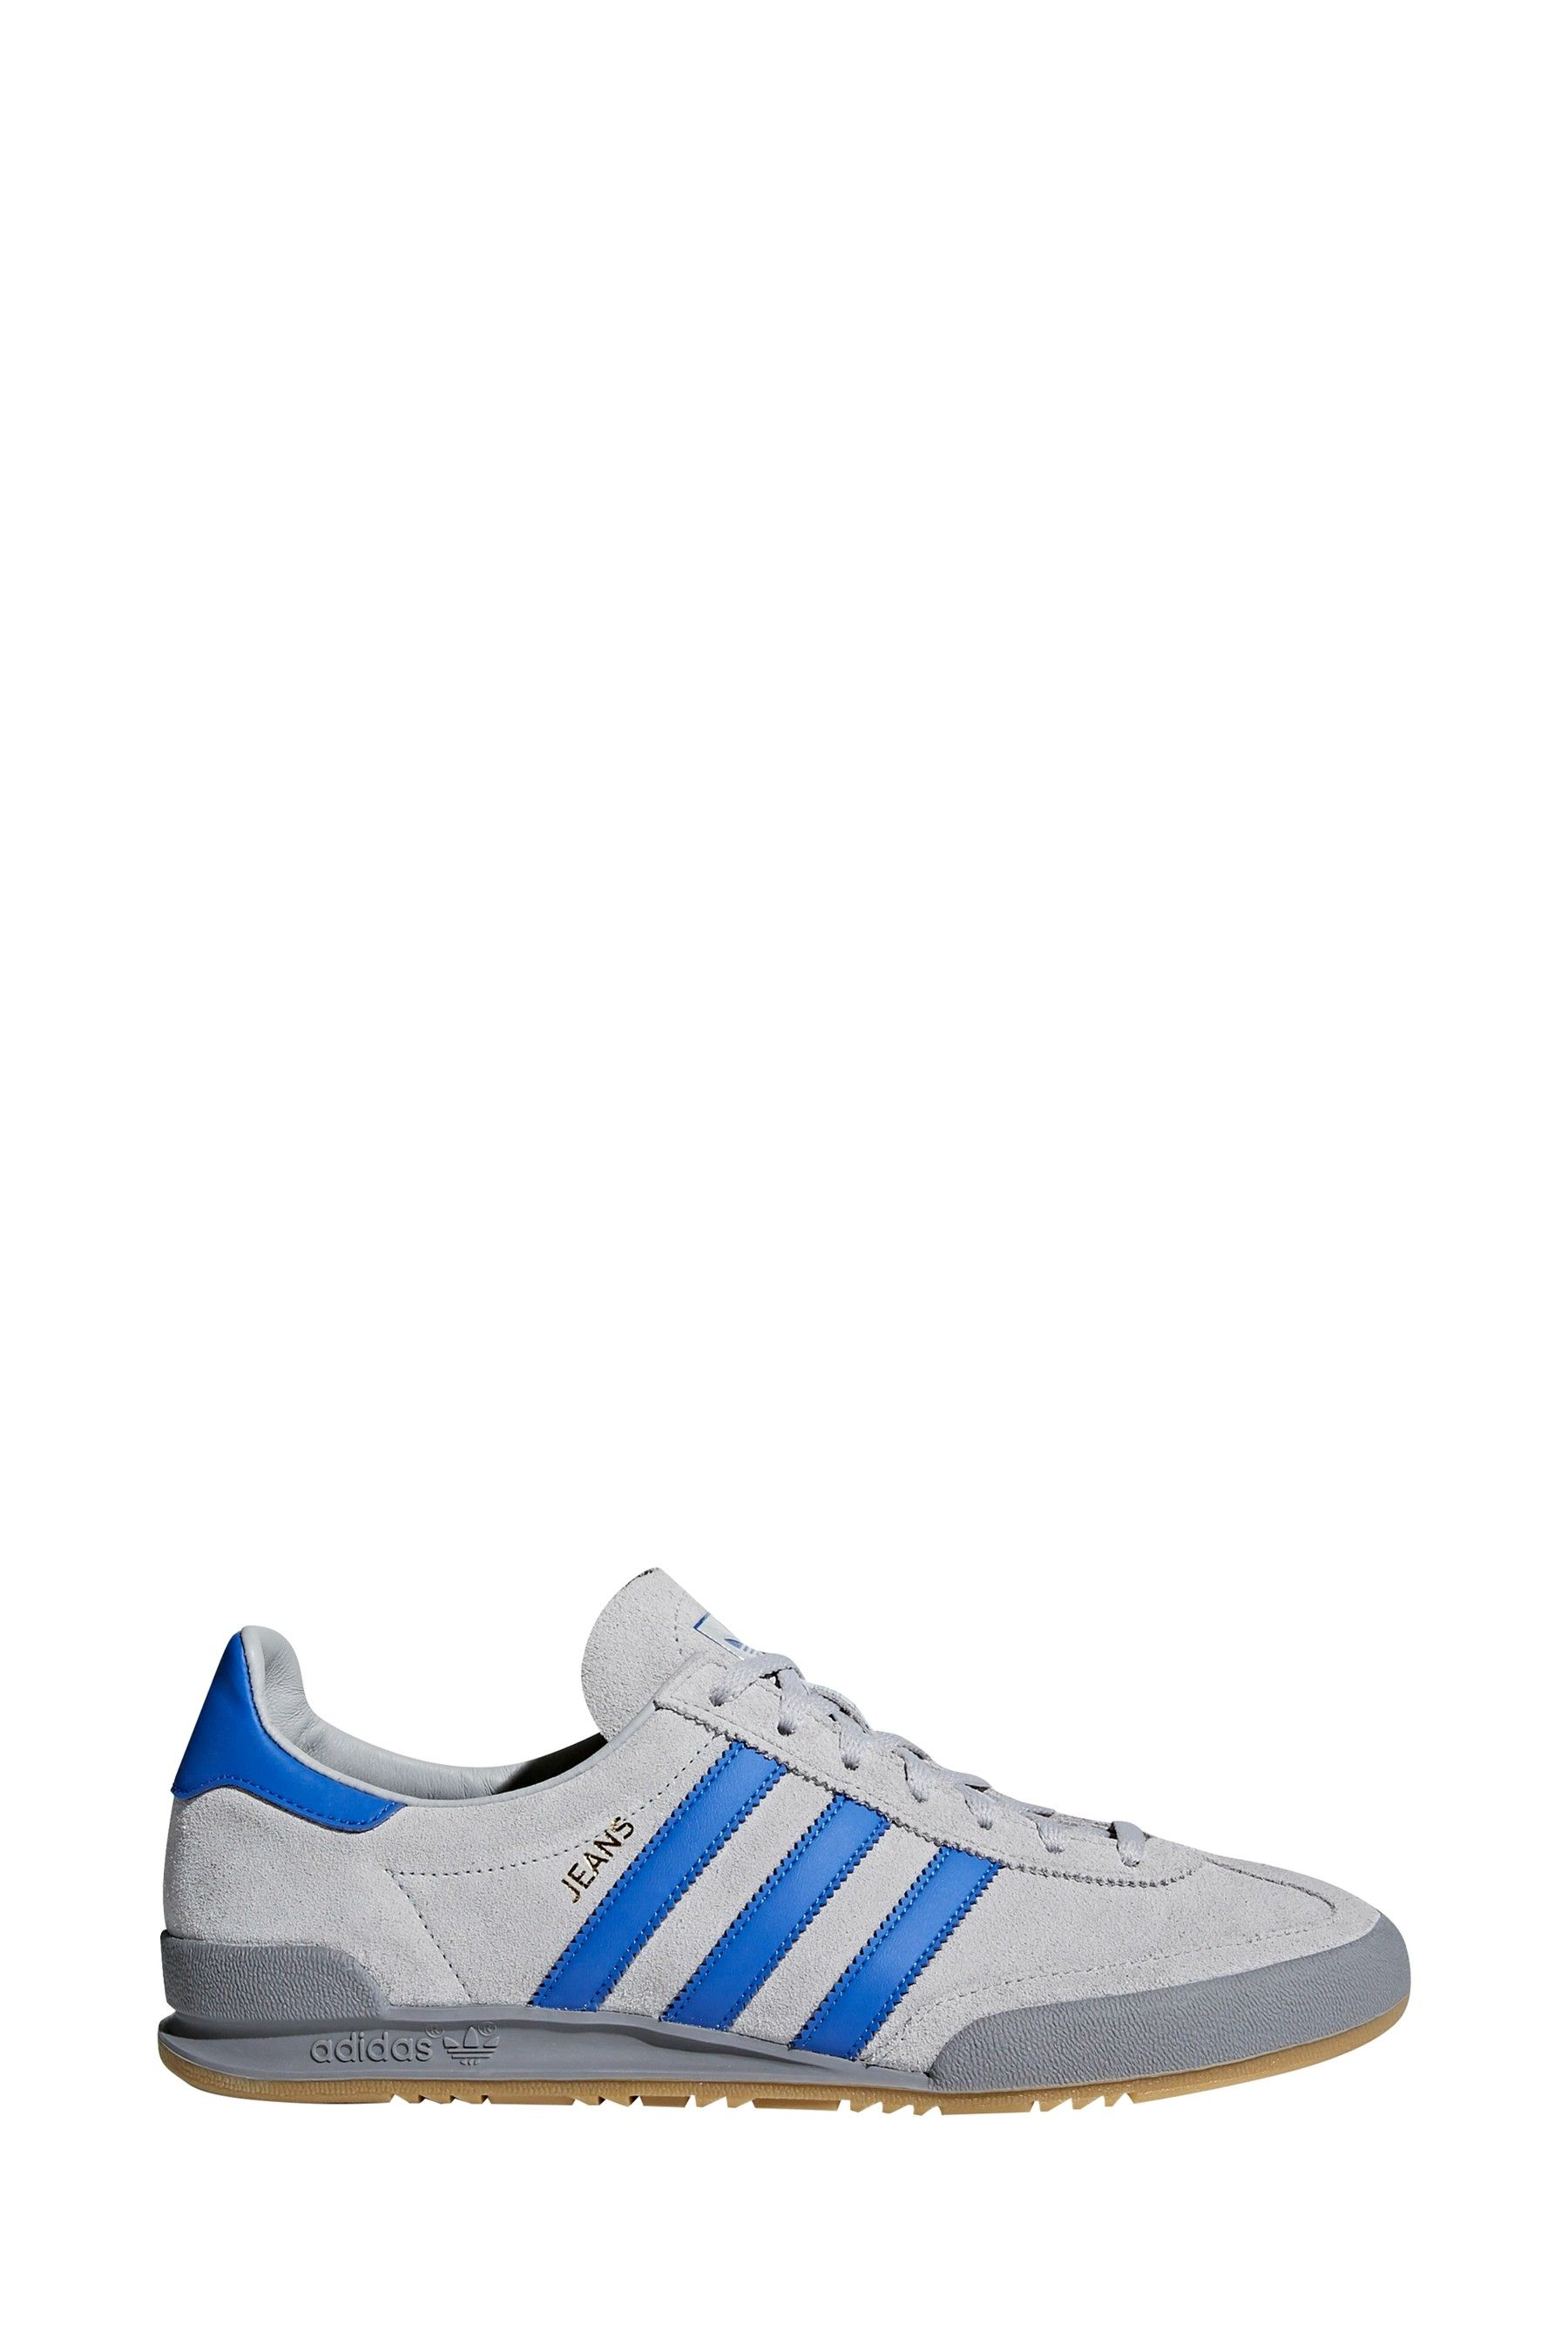 buy adidas jeans